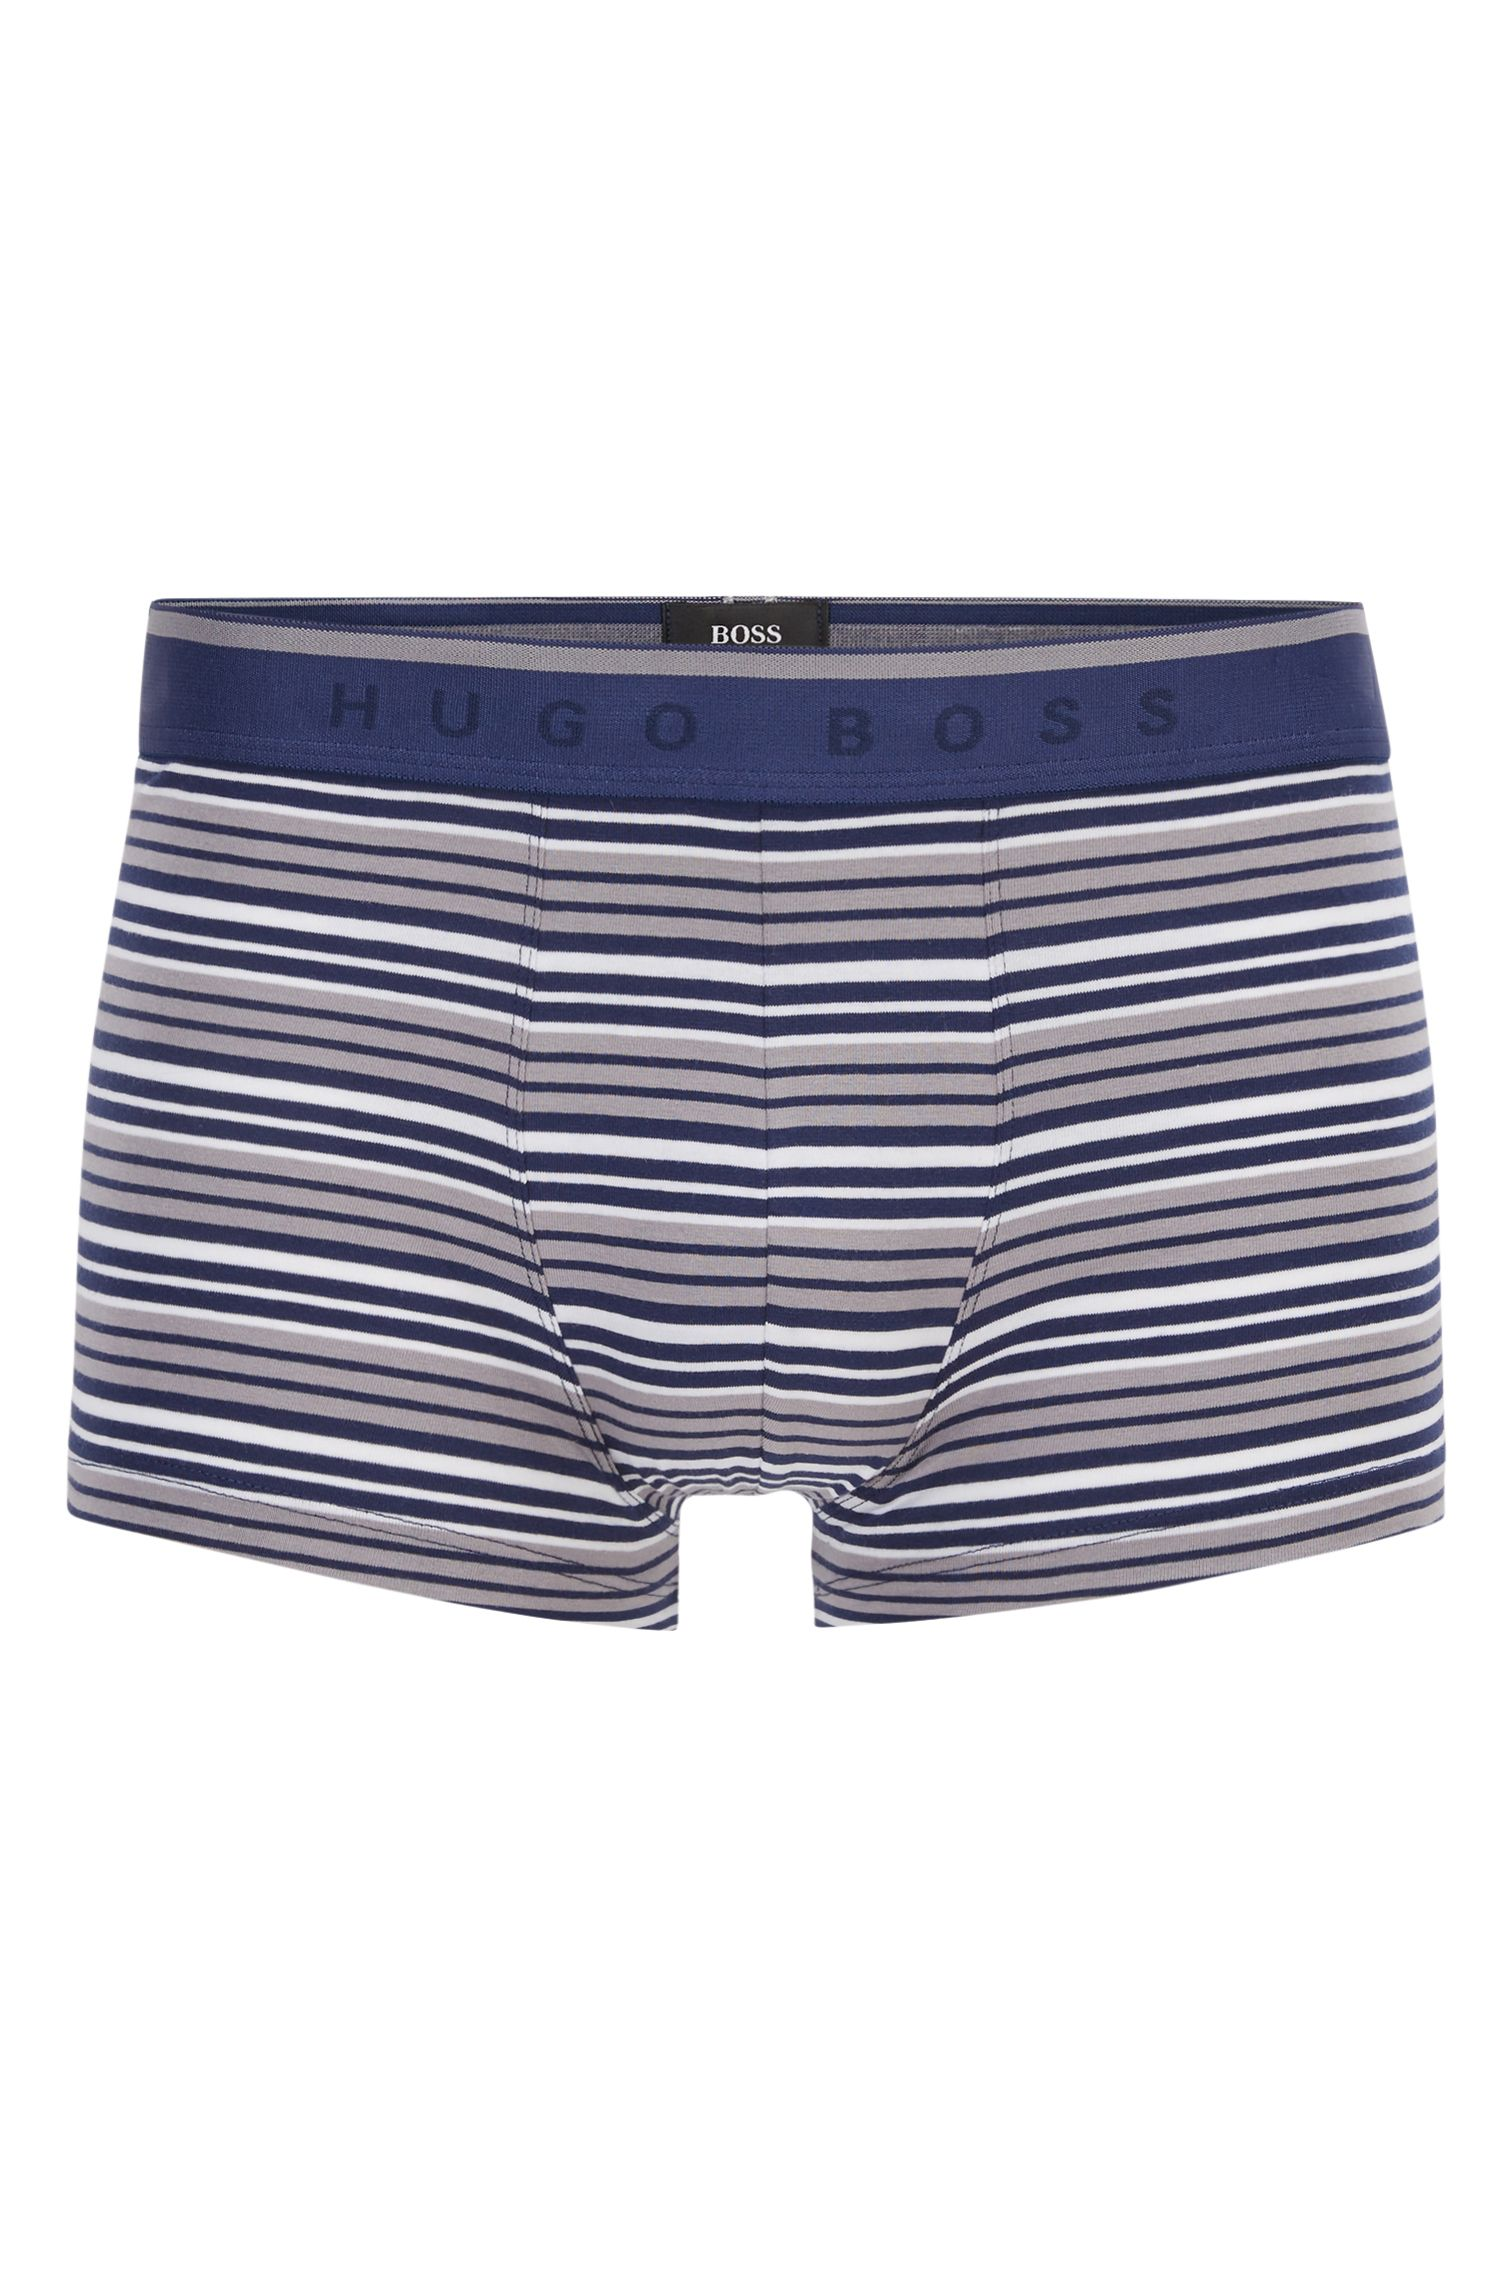 Regular-rise boxer briefs in stretch cotton jersey